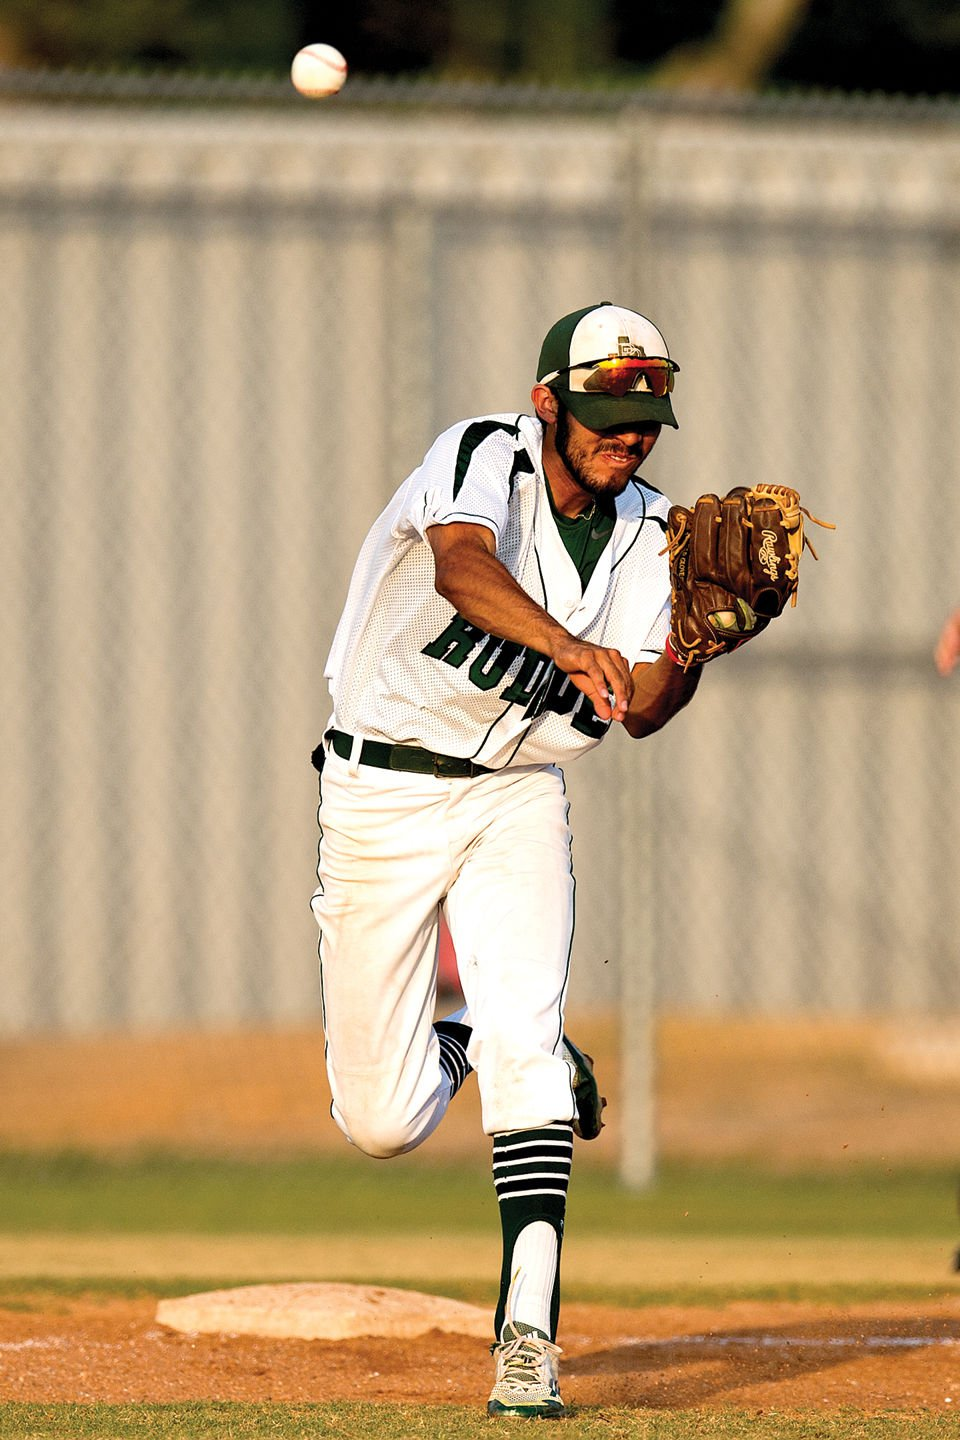 Rudder College Station Baseball Teams Ready To Tangle In